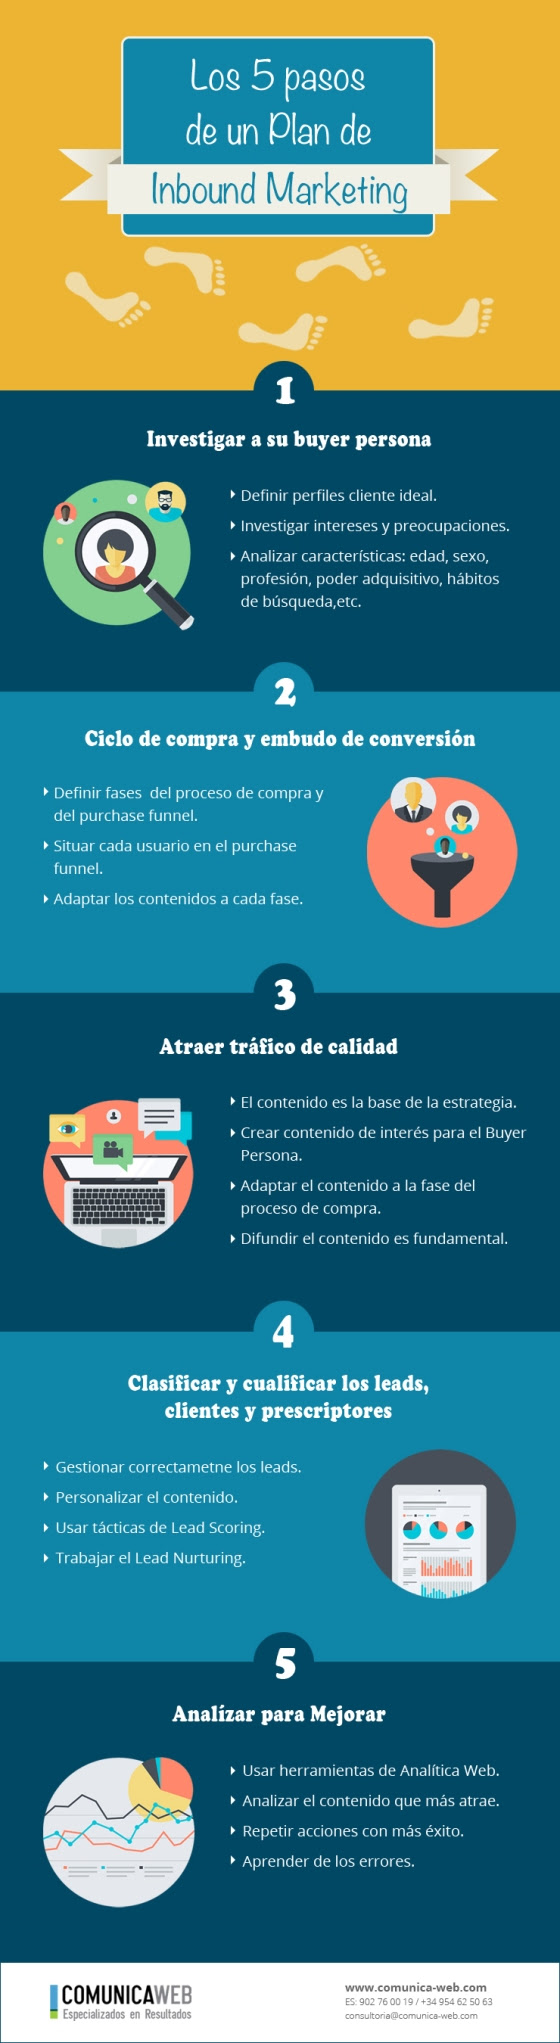 5 pasos de un plan de Inbound Marketing